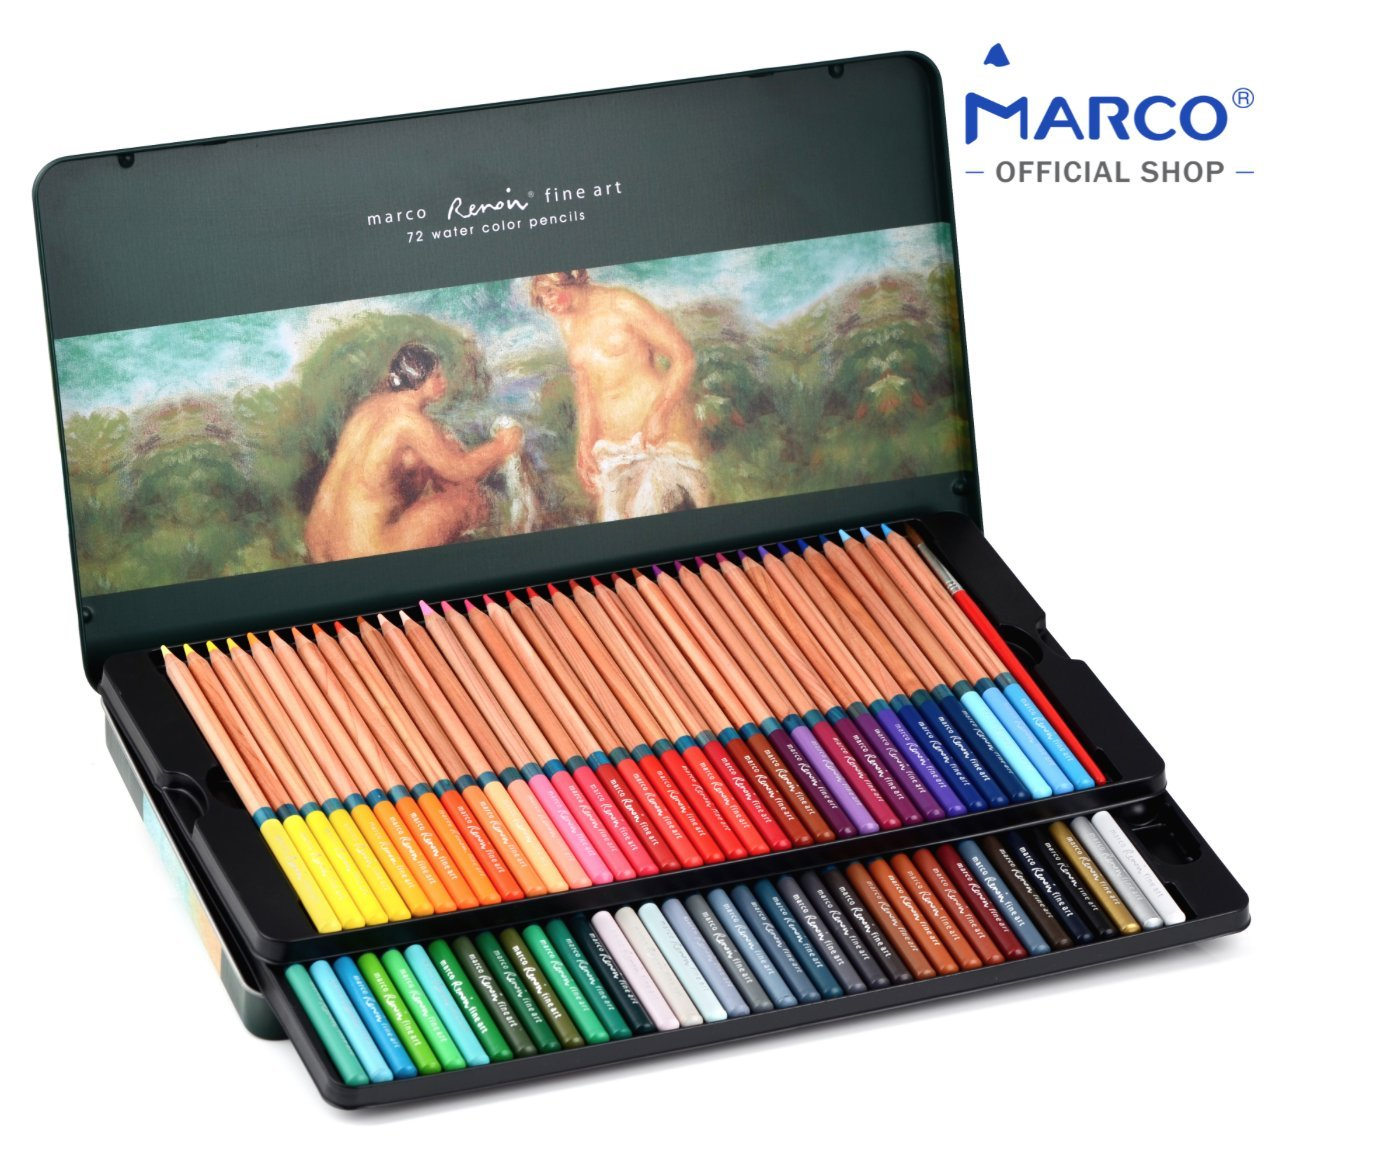 [MARCO OFFICIAL SHOP]Marco Renoir Fine Art 3120 WaterColor Pencils, Pack of 72,Tin Box,3.7mm Super Thick Lead, Fragrant Ceder Wood, Ultimate Set for Artist,Brush included, Extra Protection Packaging